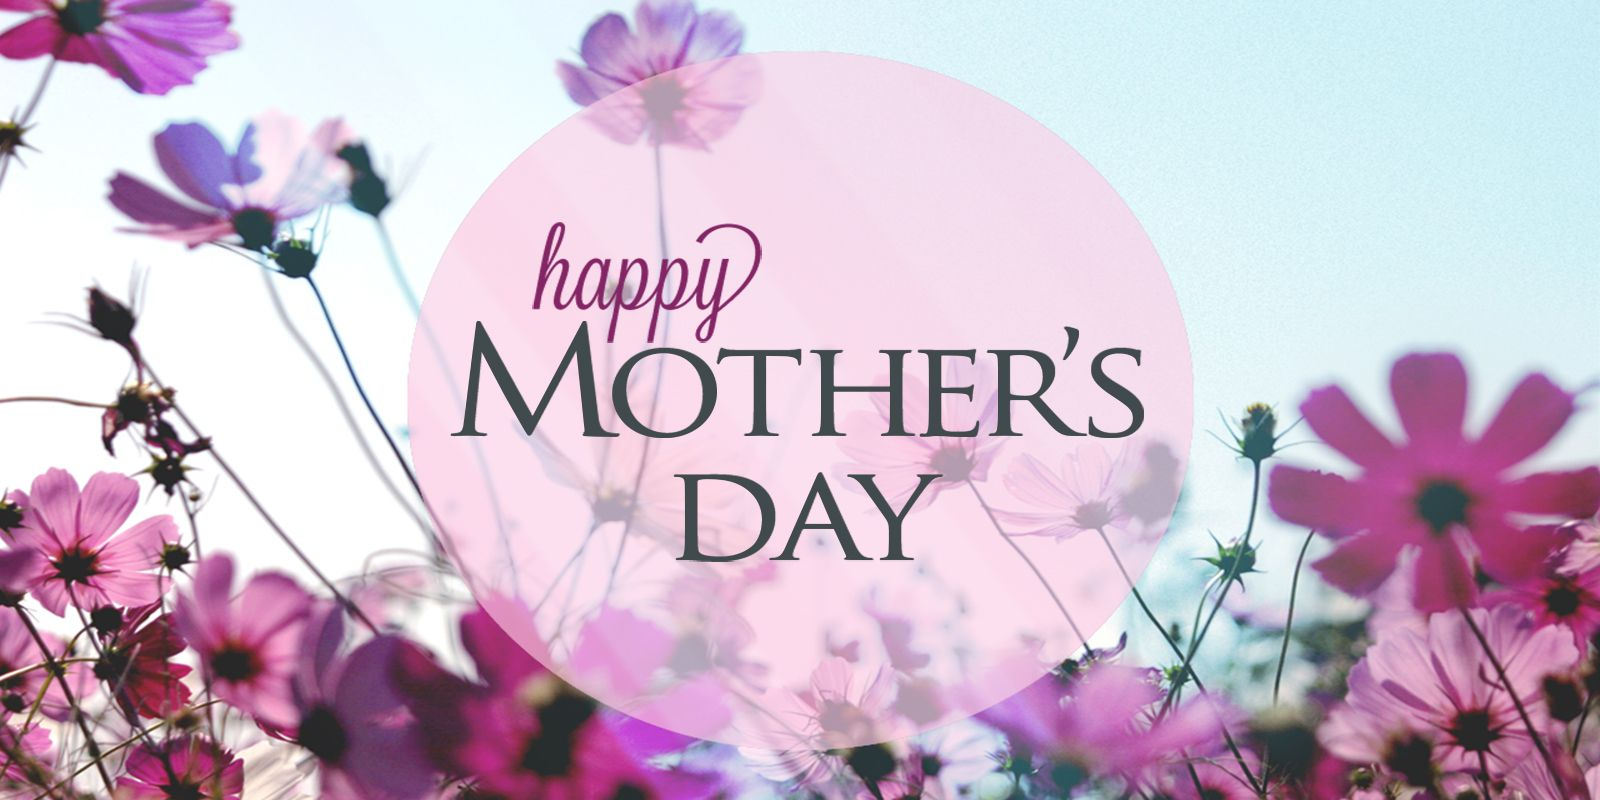 Happy Mother's Day Graphic May 2020 Digital Signage